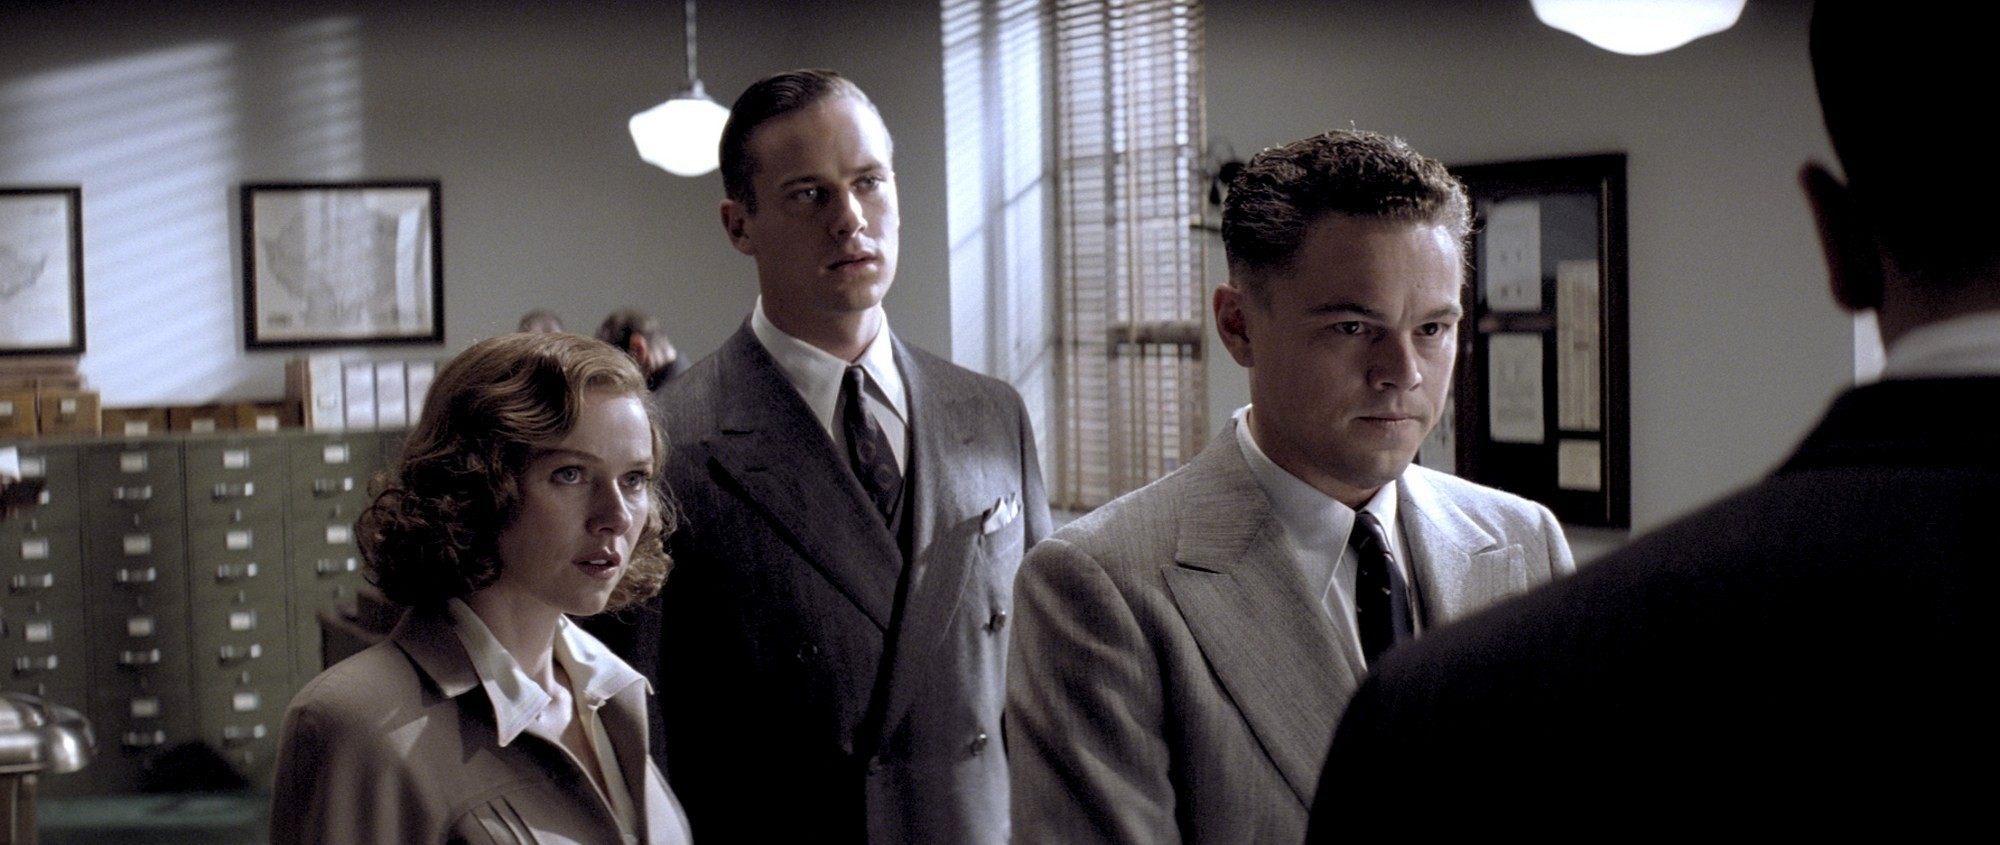 Naomi Watts, Armie Hammer and Leonardo DiCaprio in Warner Bros. Pictures' J. Edgar (2011)